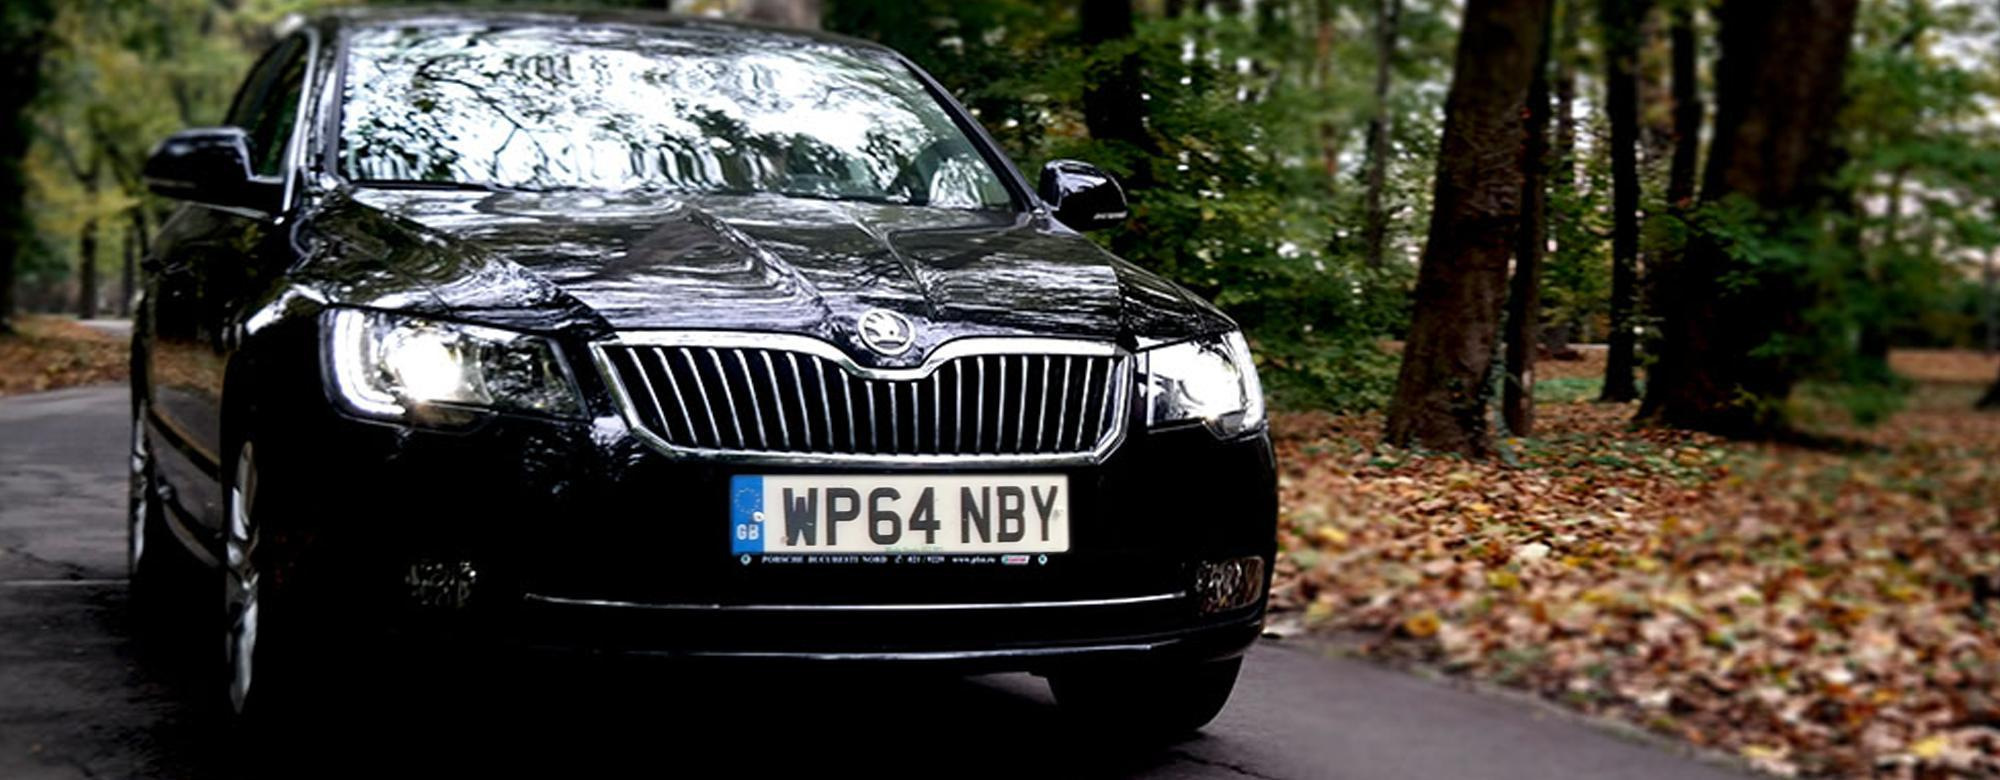 Welwyn Private Hire Skoda Octavia Taxi